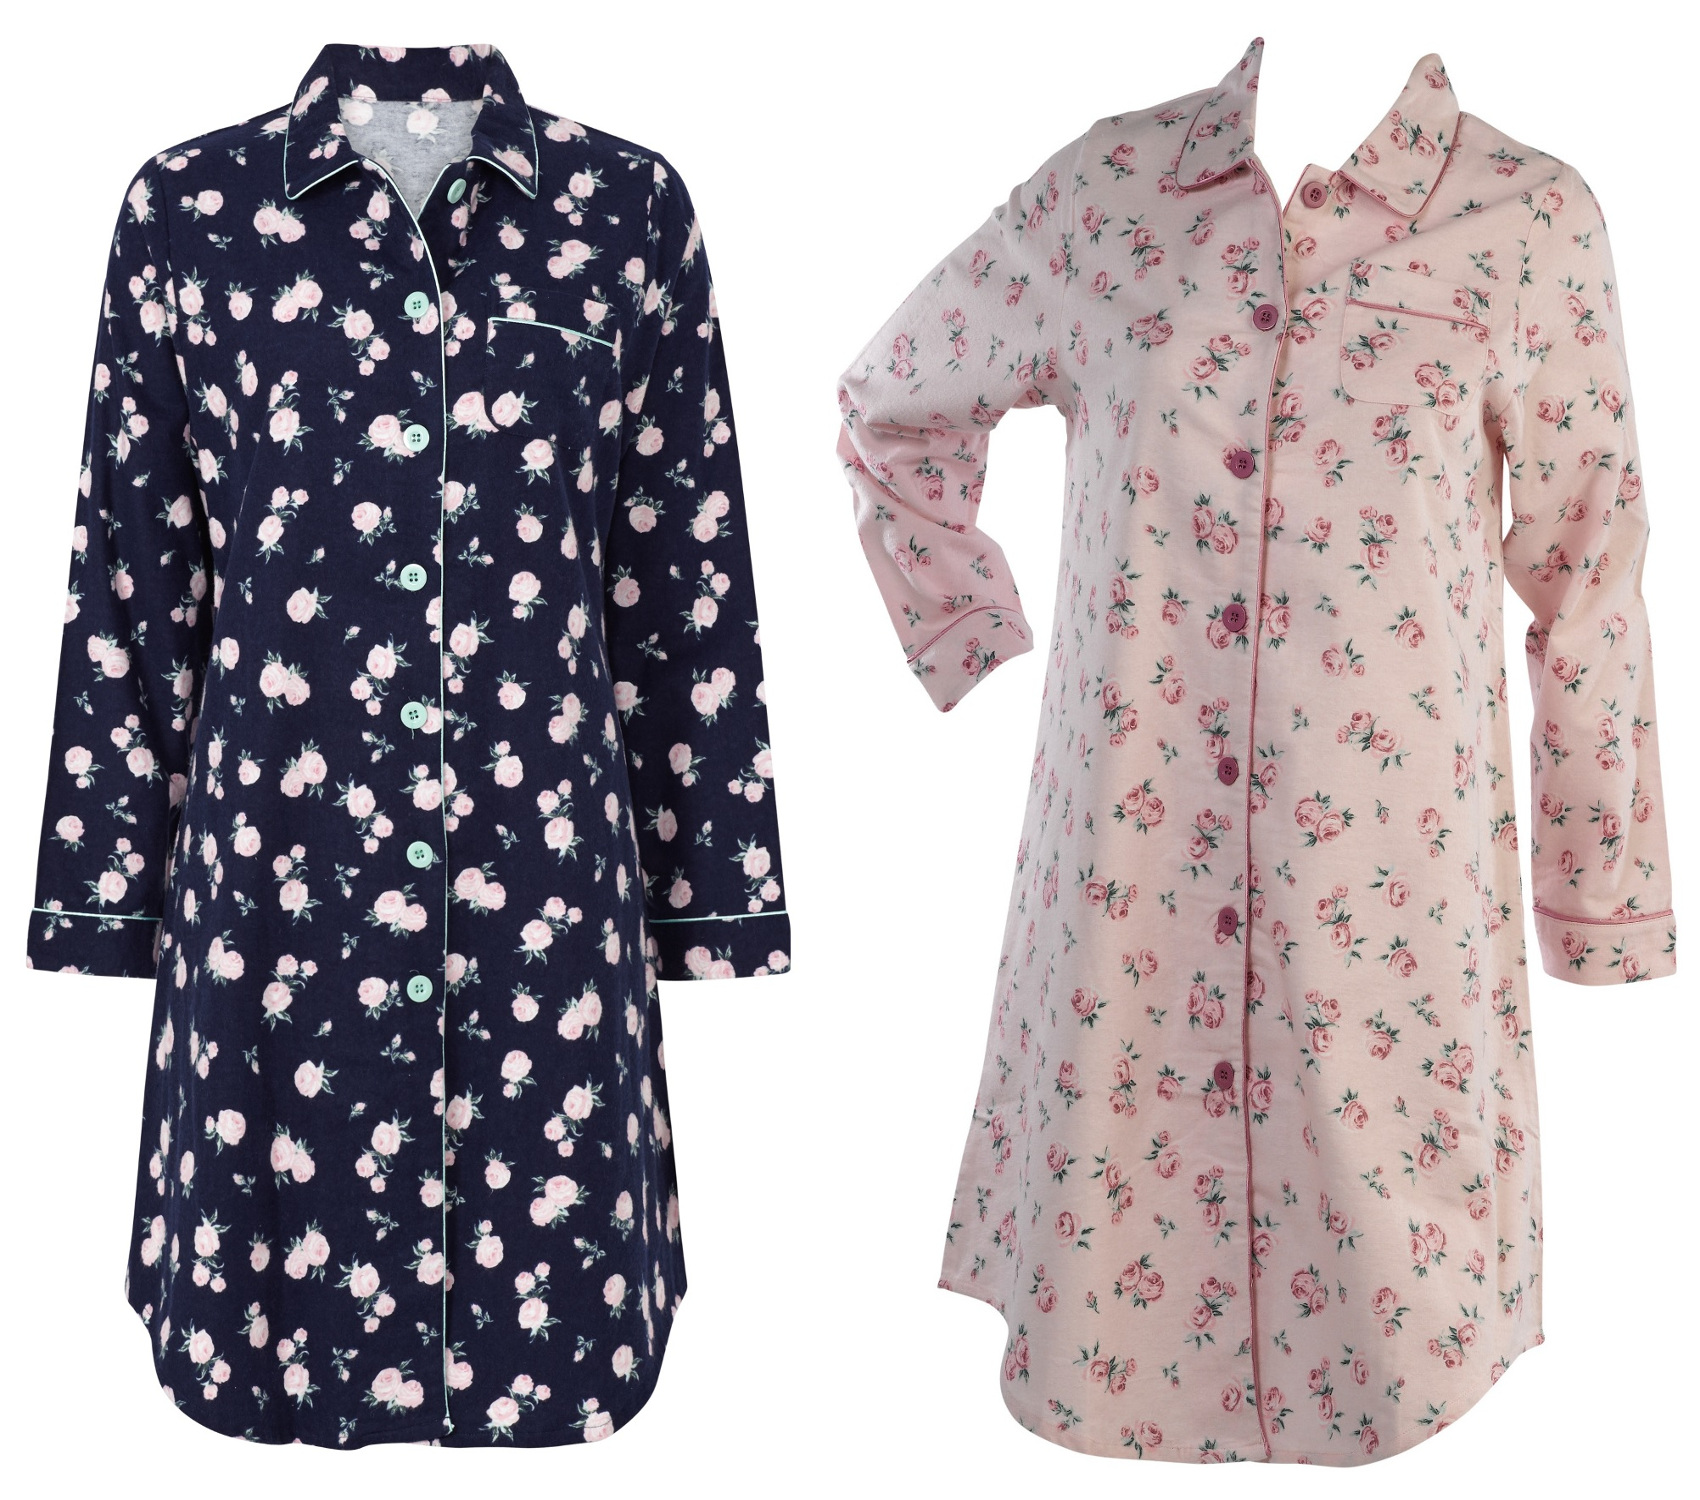 Nightgowns for Women are perfect for your nighttime look. Kohl's offers many different styles and types of women's sleepwear, like women's plus size nightgowns, maternity nightgowns, and women's Croft & Barrow nightgowns.